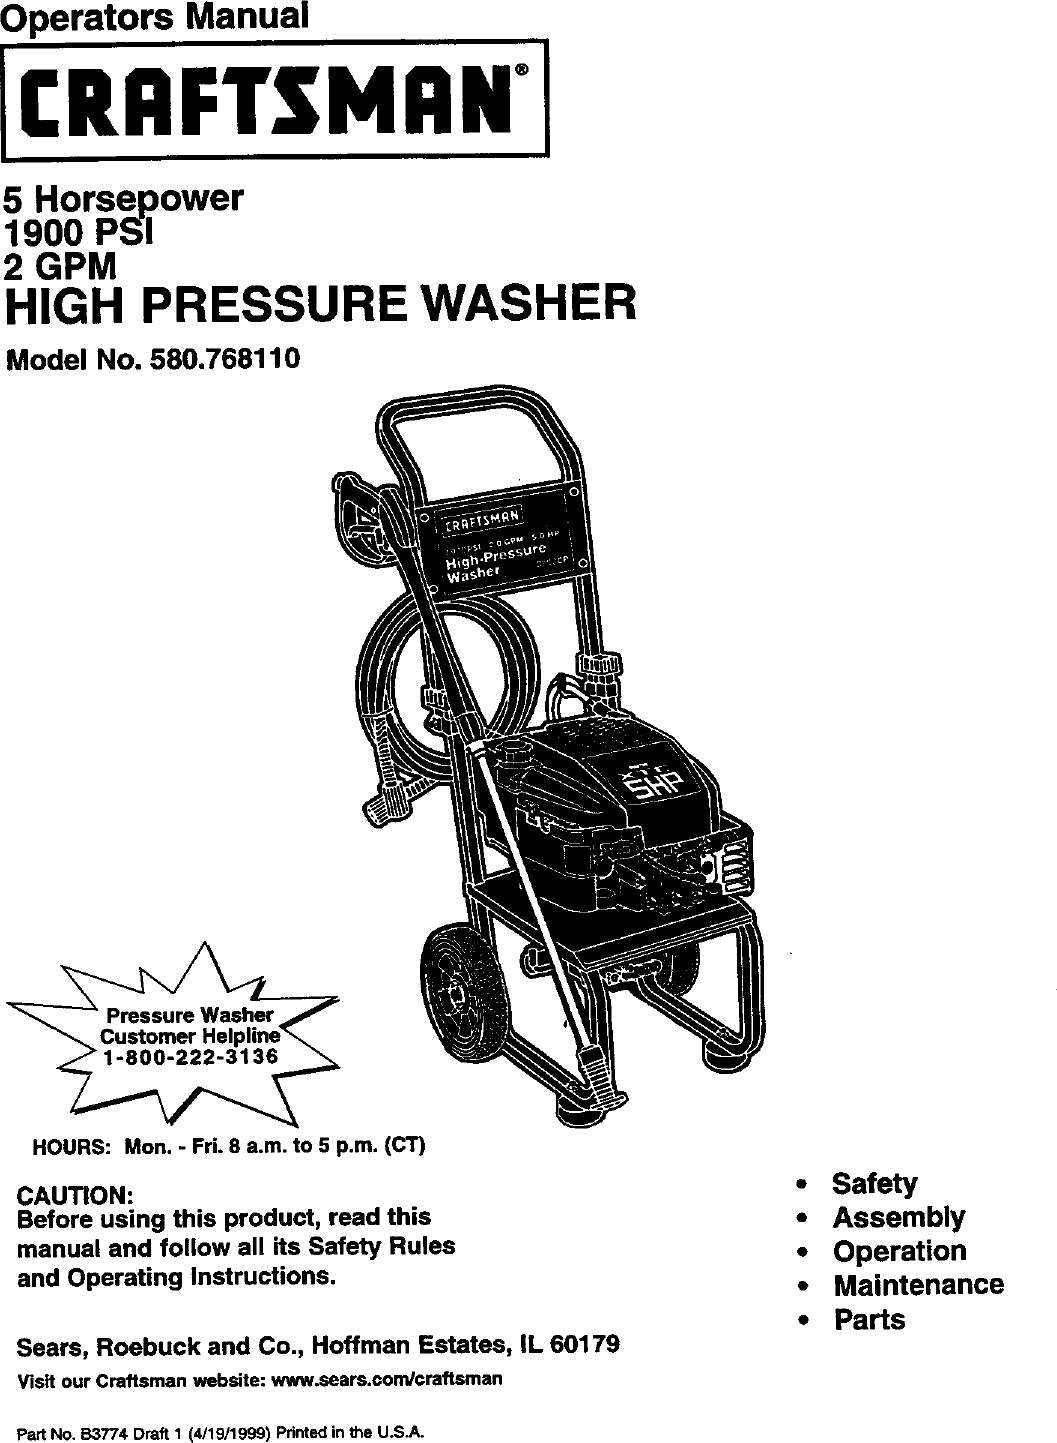 Craftsman 580768110 User Manual HIGH PRESSURE WASHER